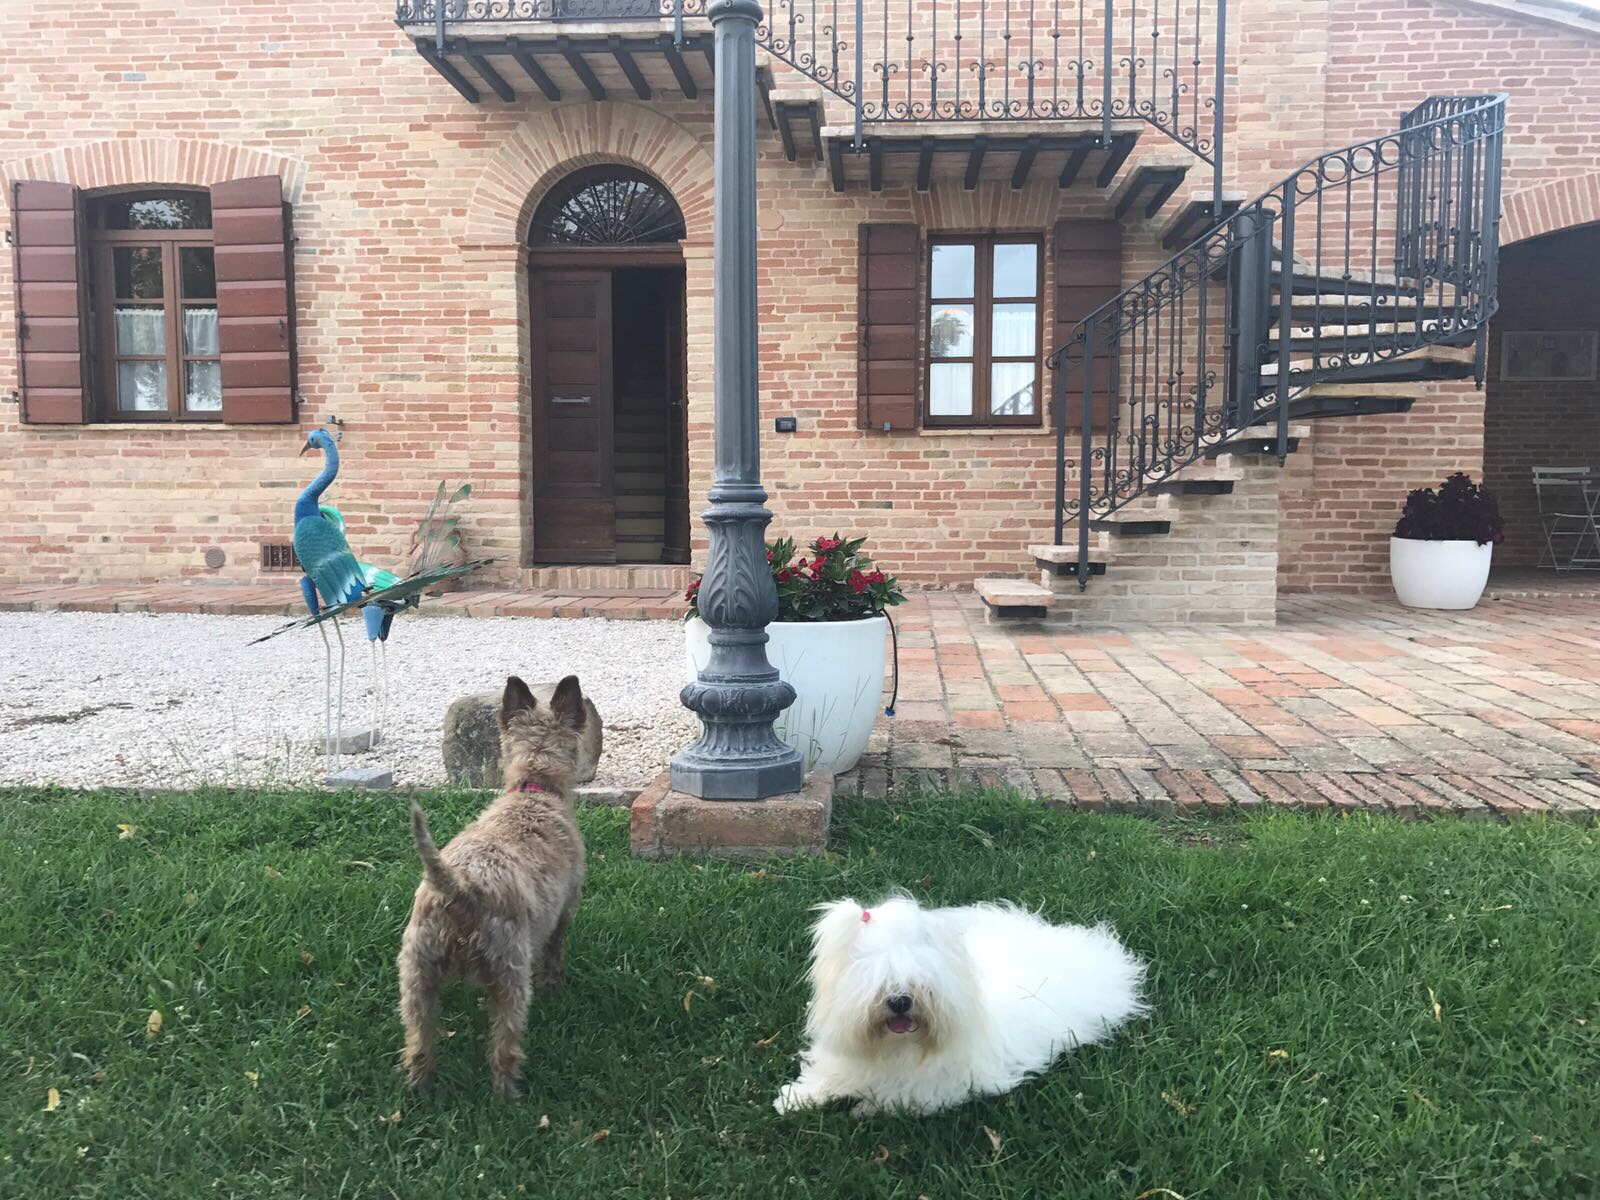 On holiday in Italy - 2018 Sasha and the resident pooch Gioia relax in the garden